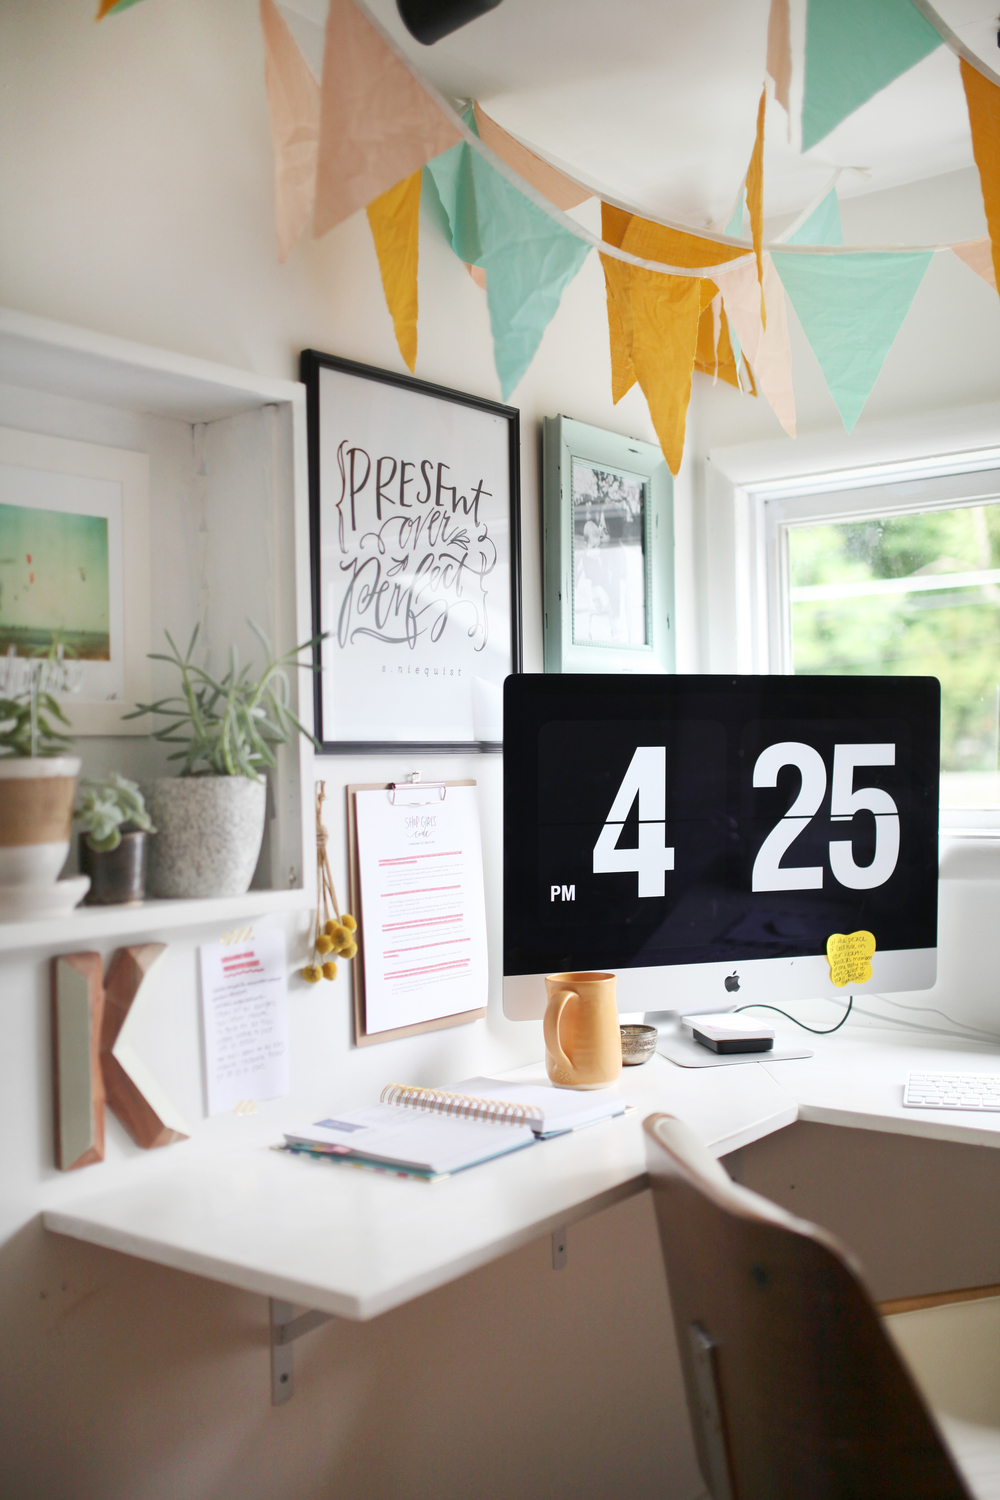 Present over perfect - home plants - office plants - DIY office - home office inspiration - clock screensaver - vallarina creative - small business owners - entrepreneurs - mompreneurs - succulents -